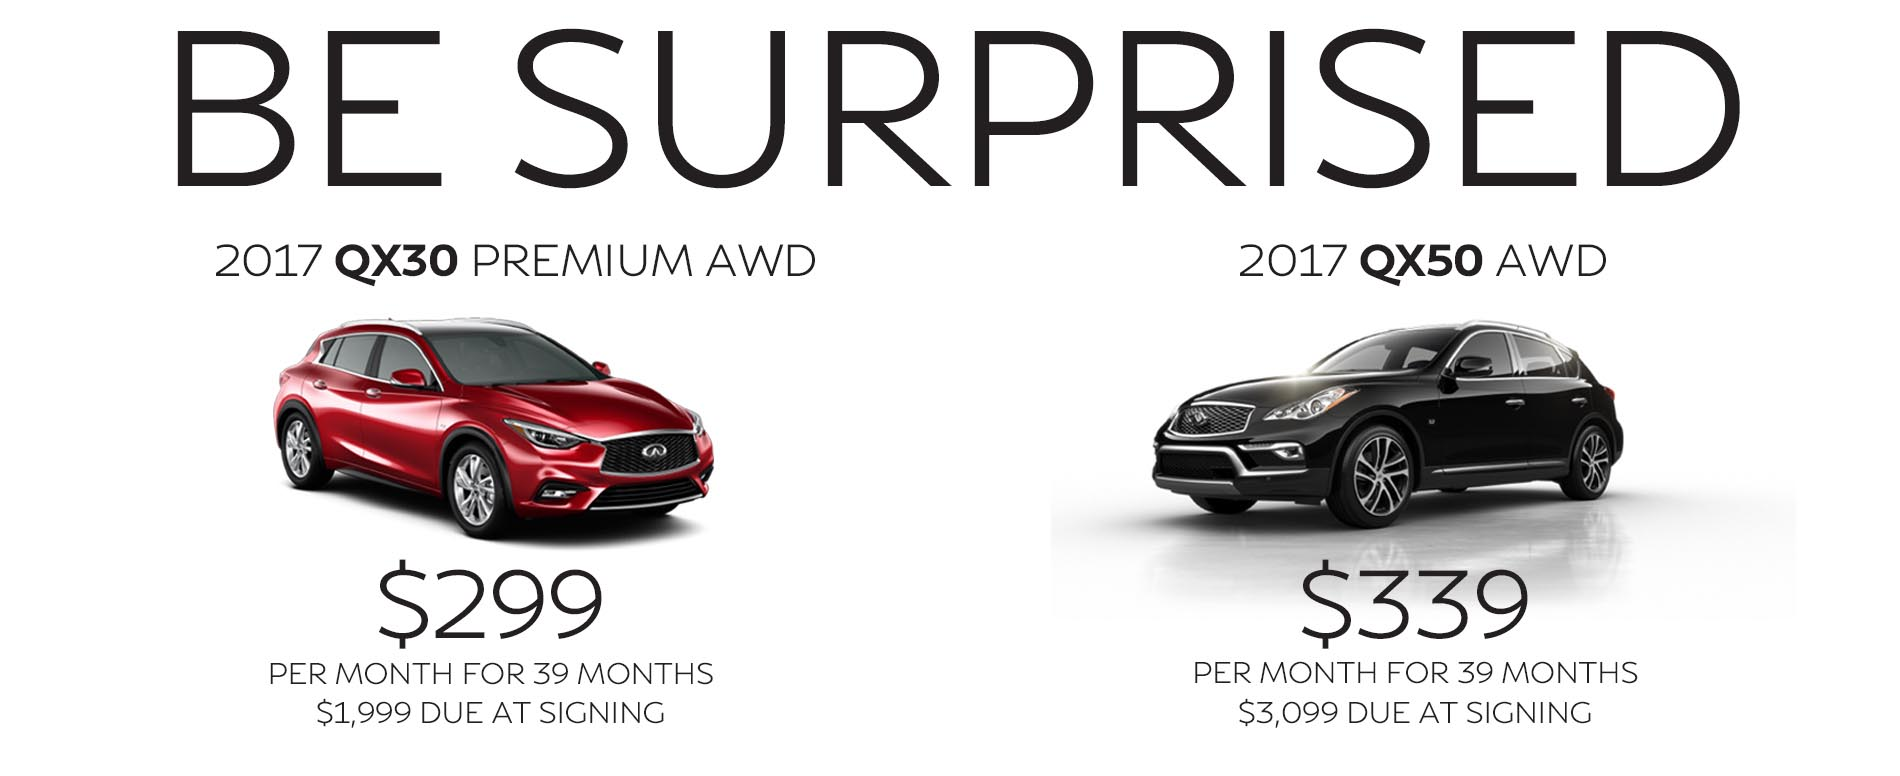 Be Impressed. Lease a 2017 Infiniti QX30 for $299 per month with $1,999 due at signing or lease a 2017 QX50 for $339 per month with $3,099 due at signing.